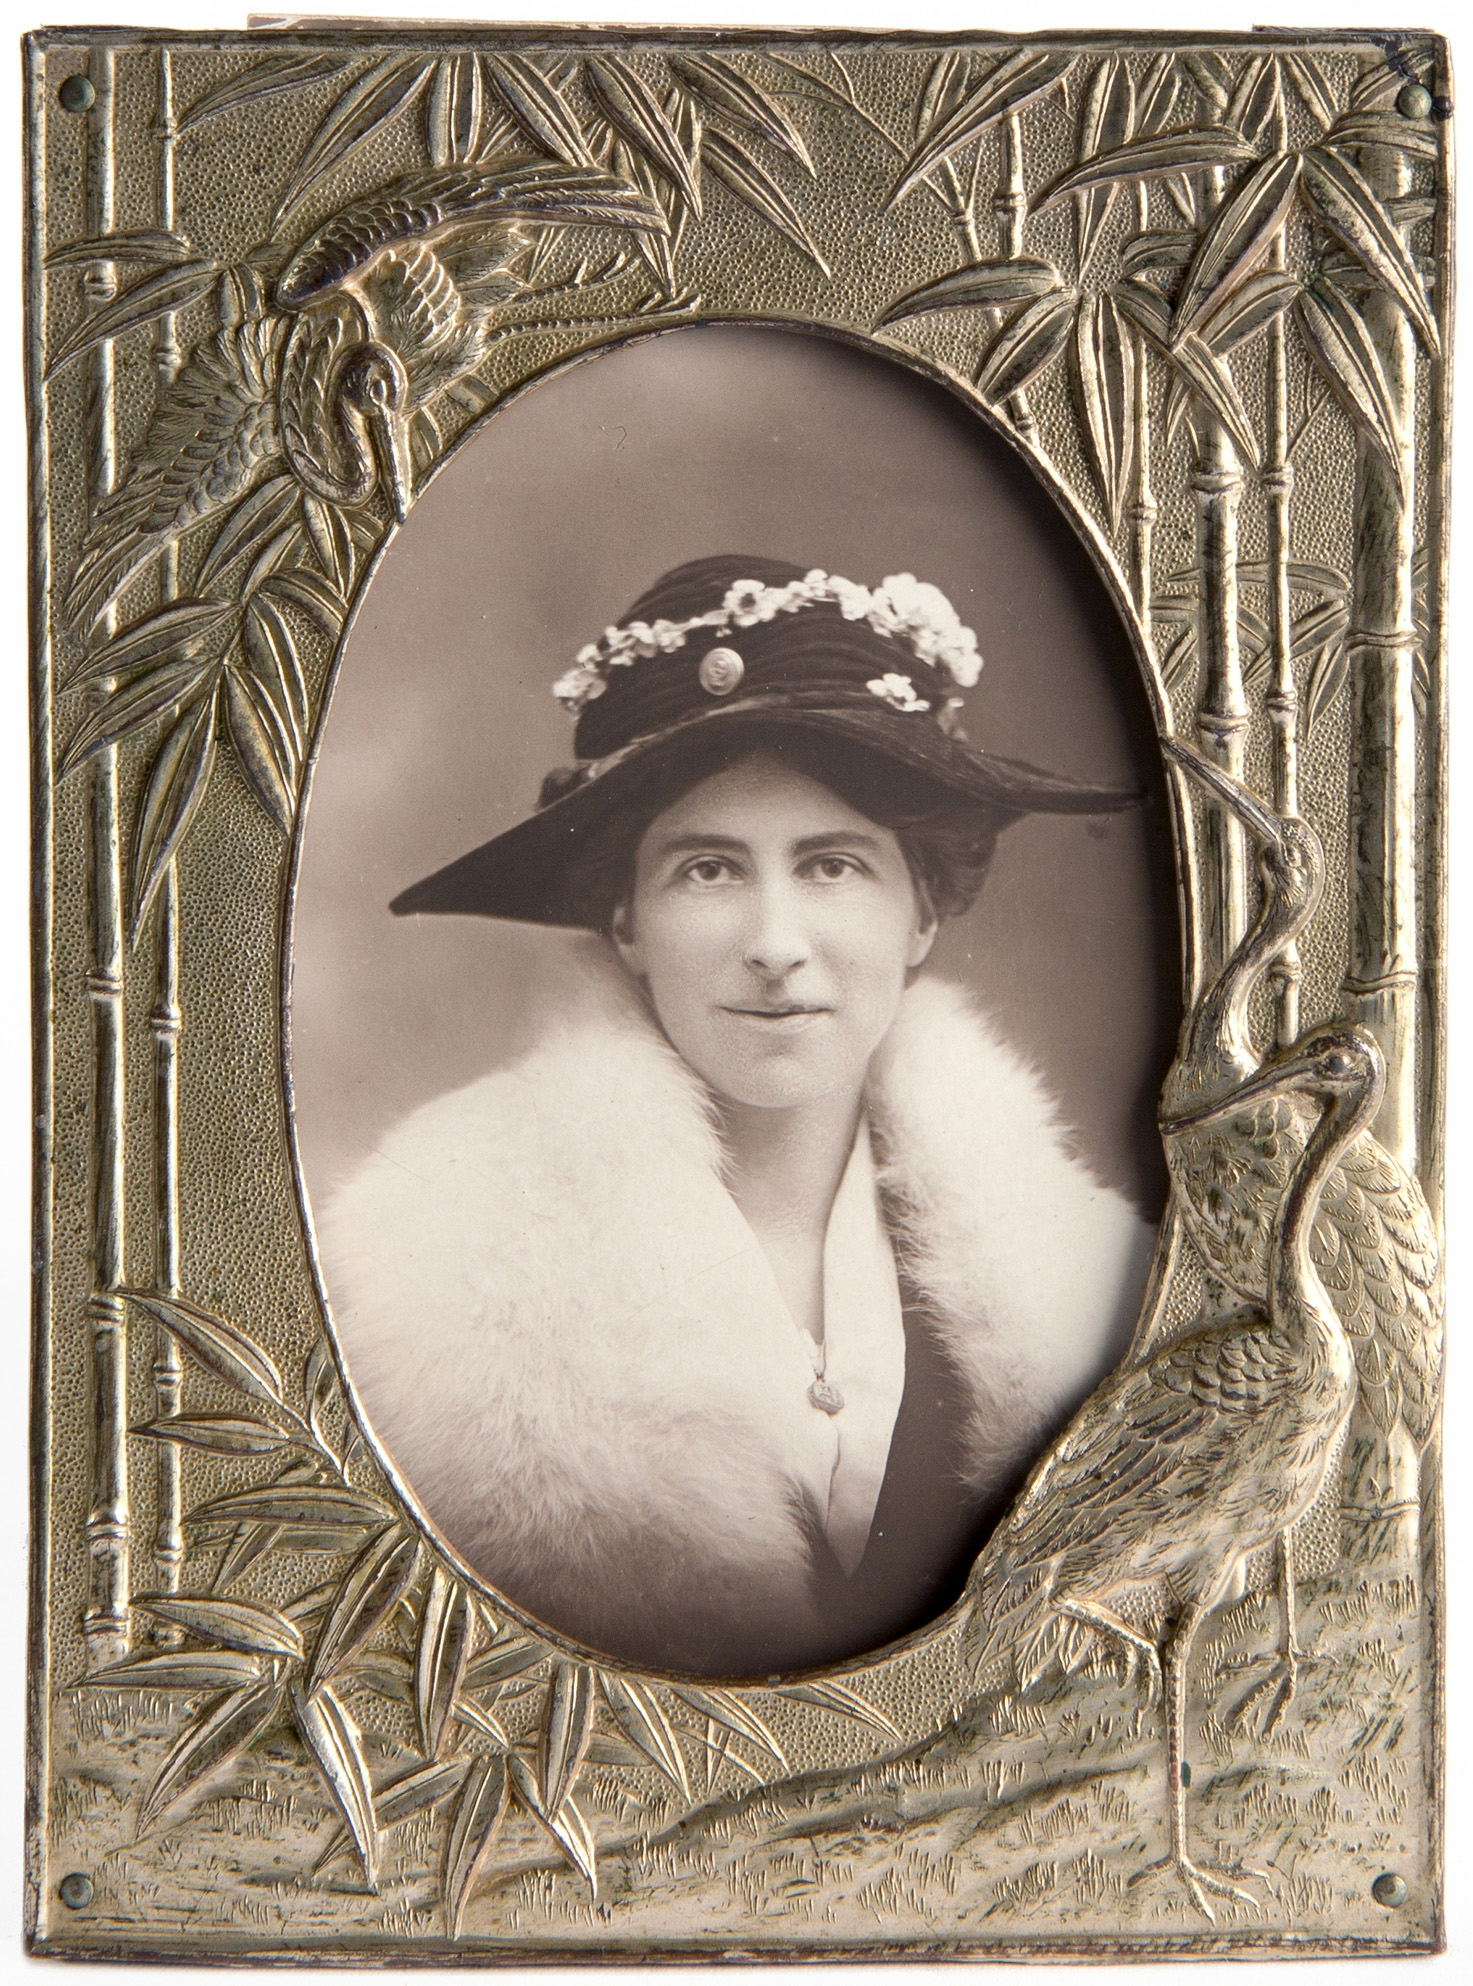 Framed platinum silver gelatin print of a woman wearing a hat trimmed with flowers.